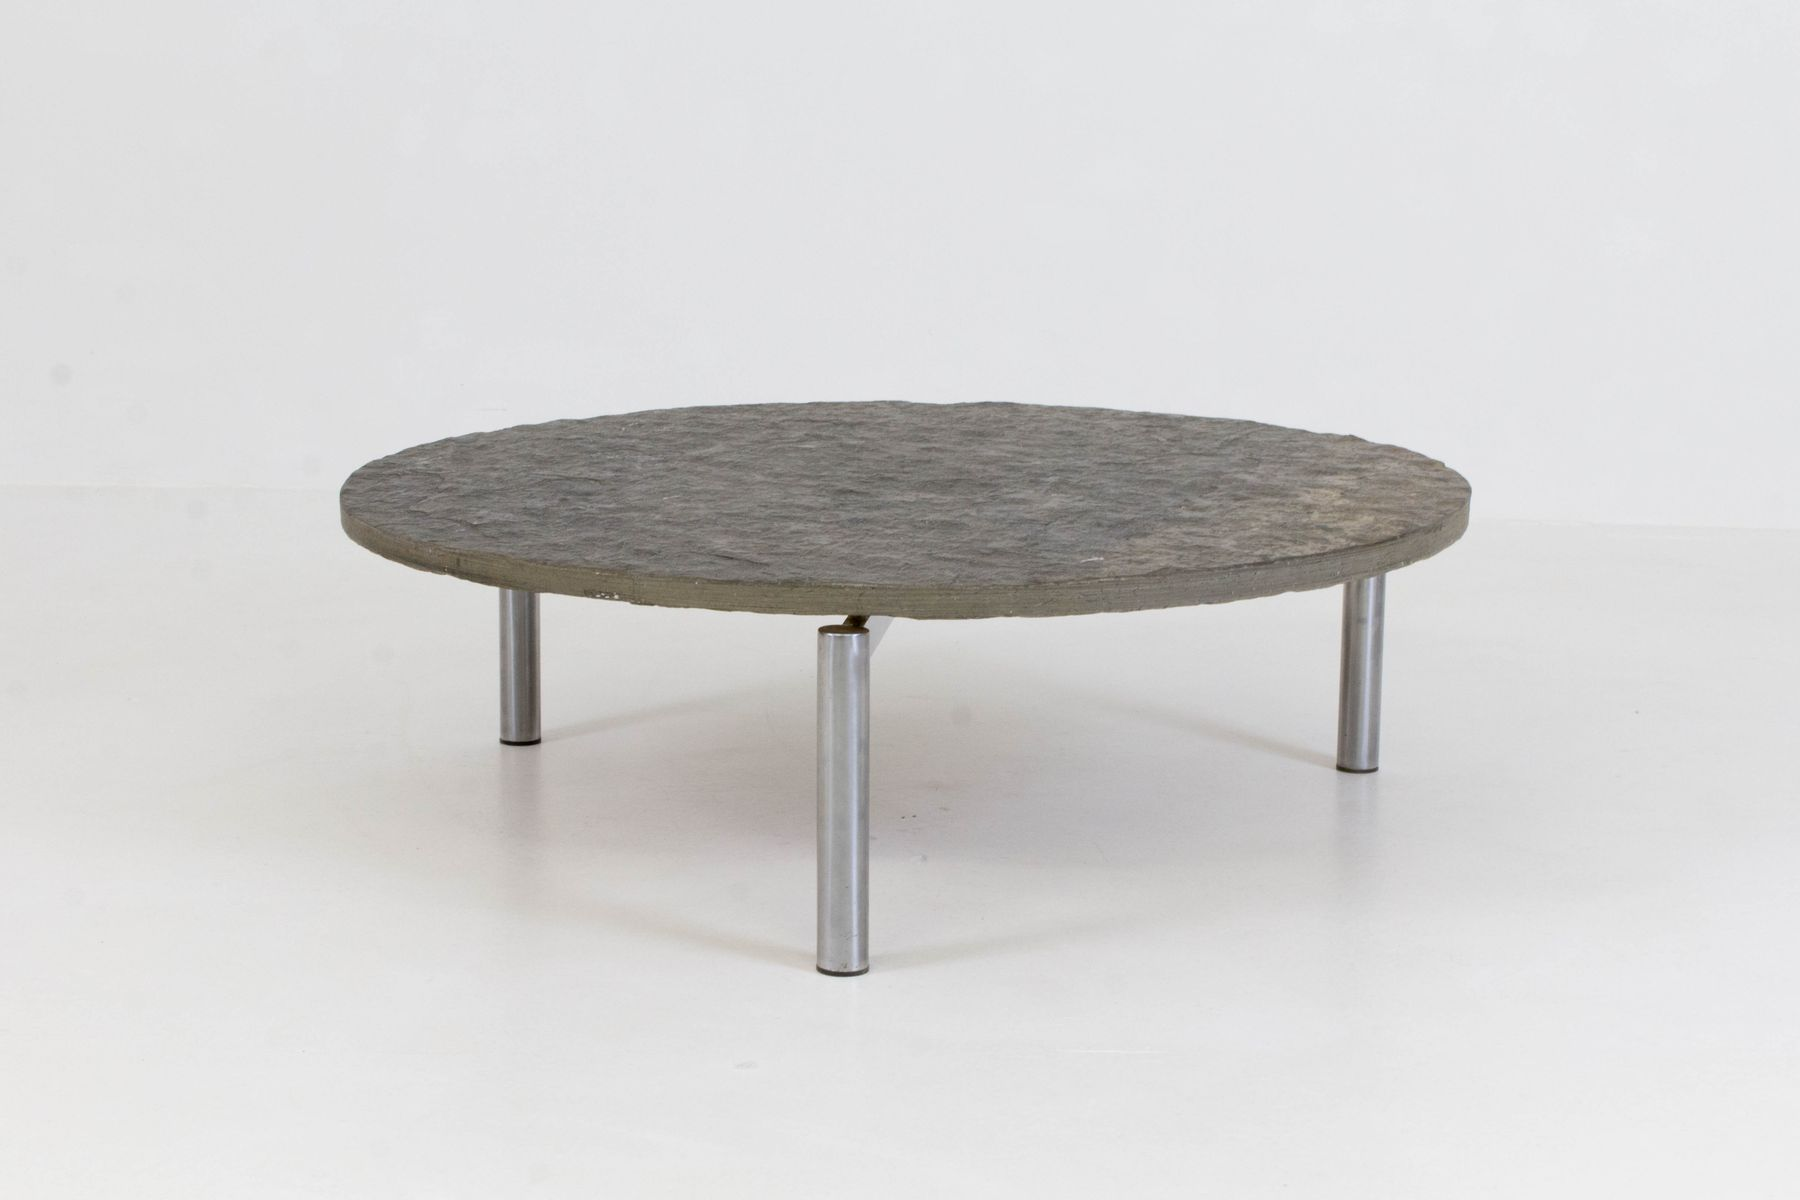 Brutalist MidCentury Slate Top Coffee Table 1970s for sale at Pamono